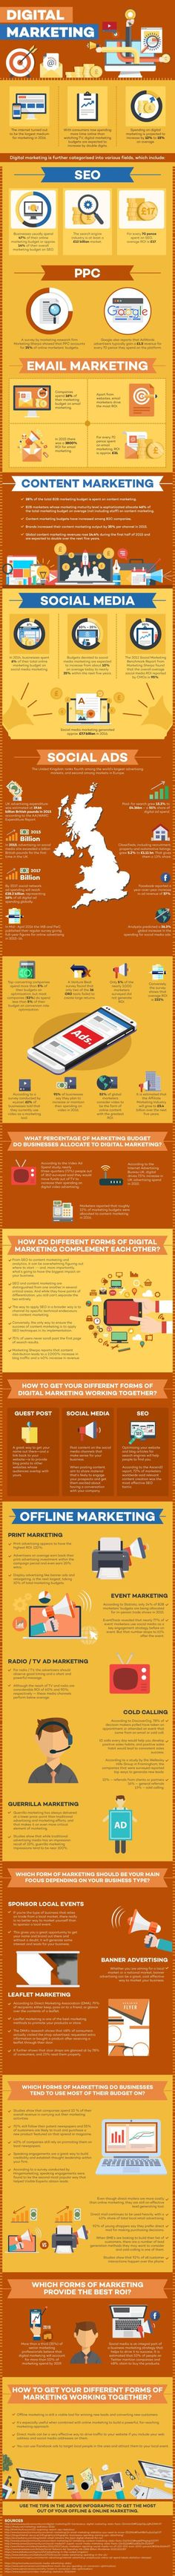 Online vs. Offline Marketing: An Infographic - Social Media Explorer